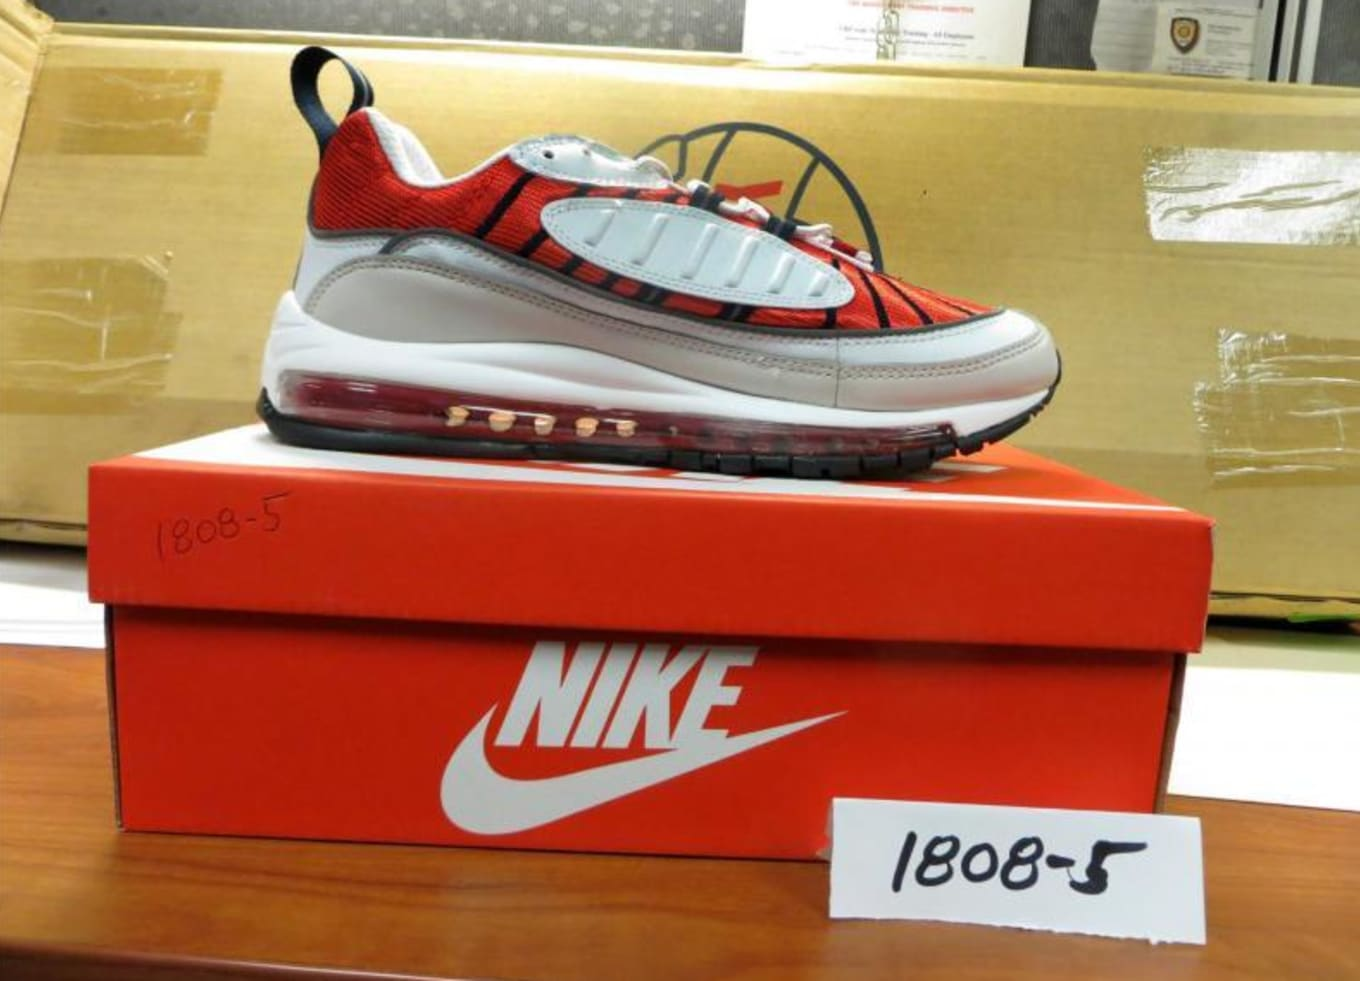 4bd6865bc6 Nearly $2 Million of Fake Nikes Seized in New York | Sole Collector